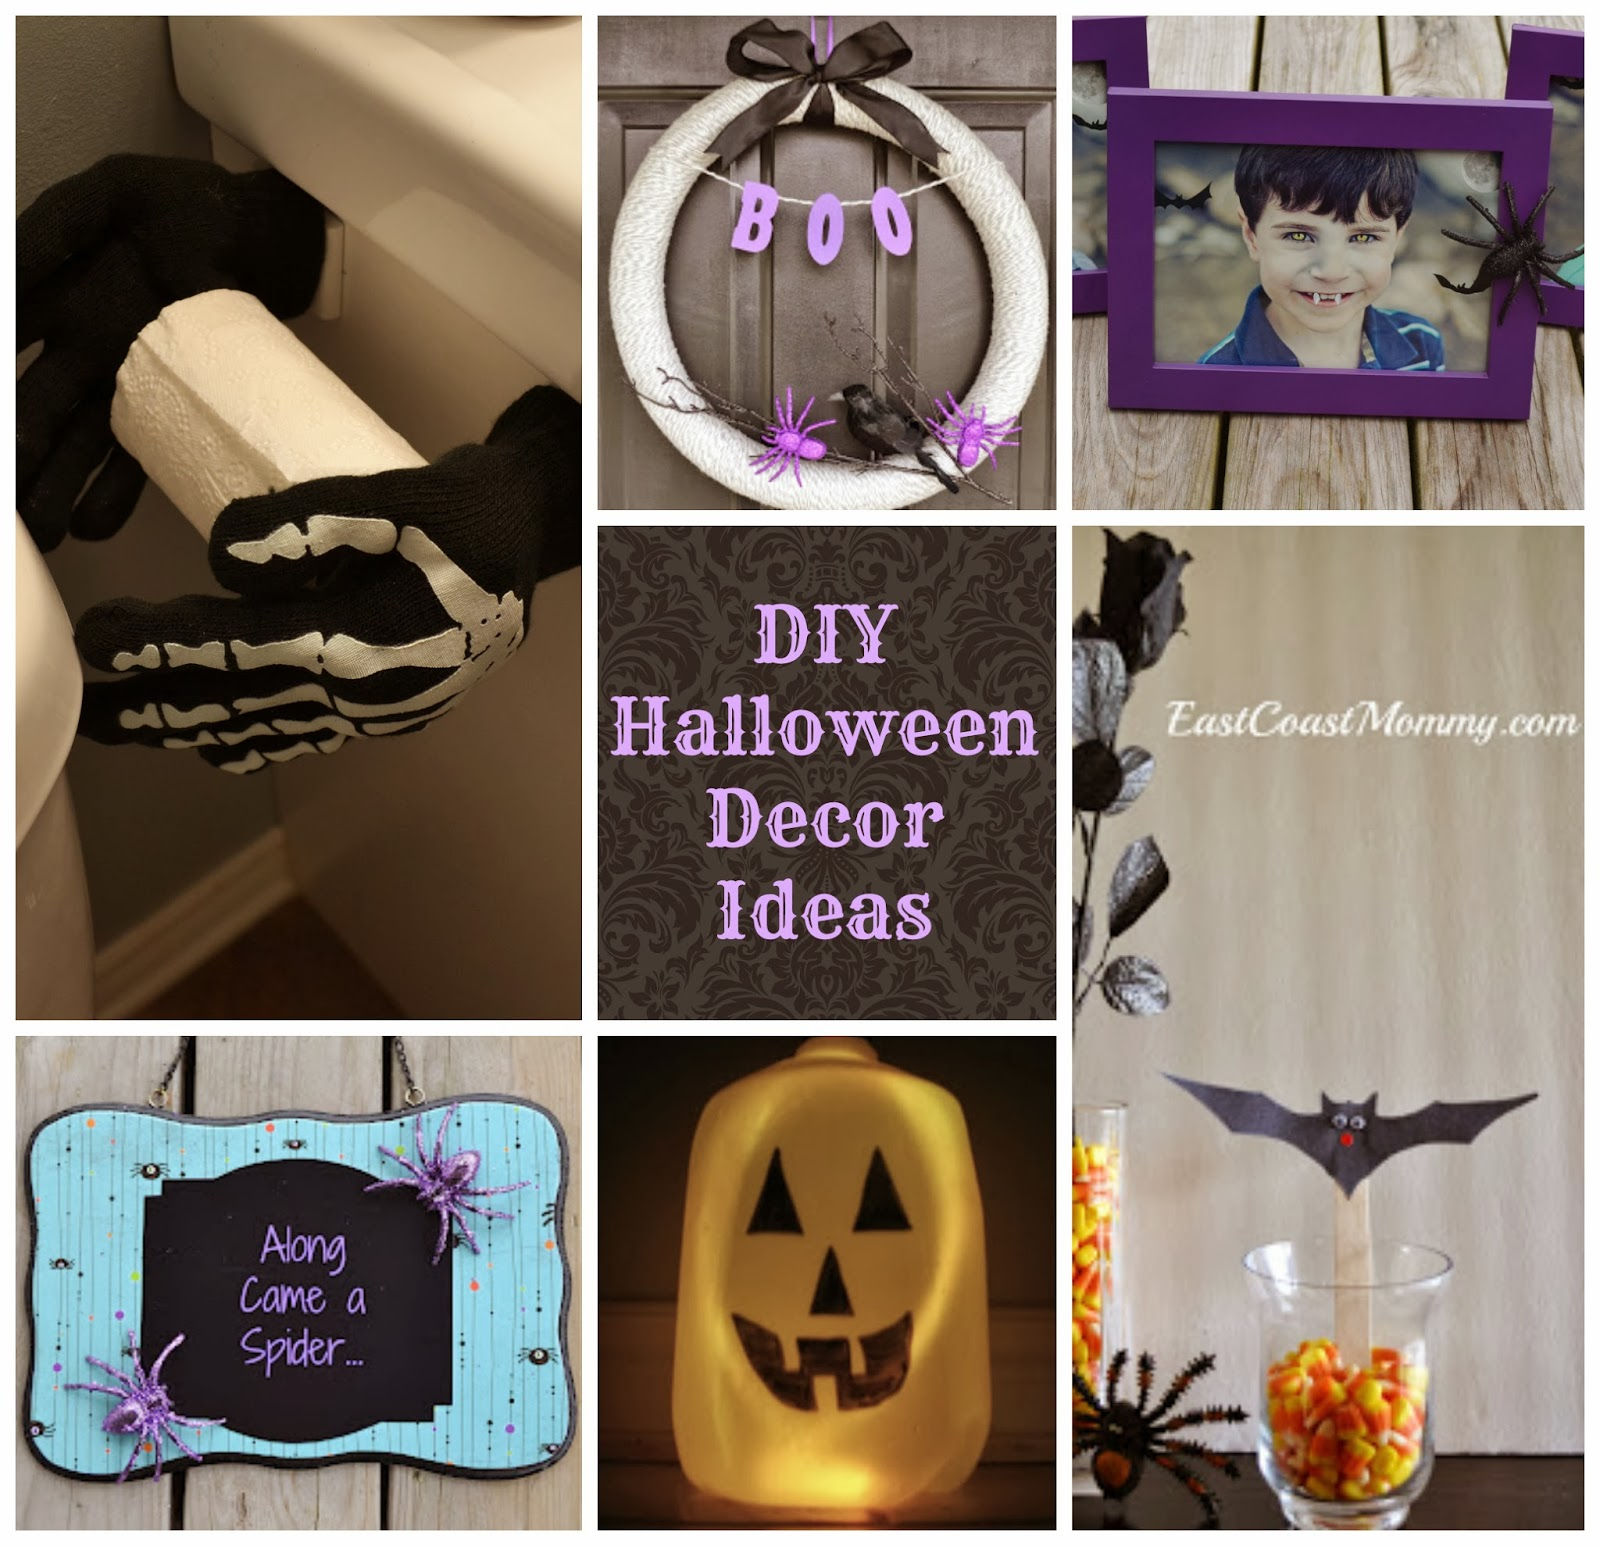 Cute halloween decorations to make - 7 Fantastic Diy Halloween Decor Ideas